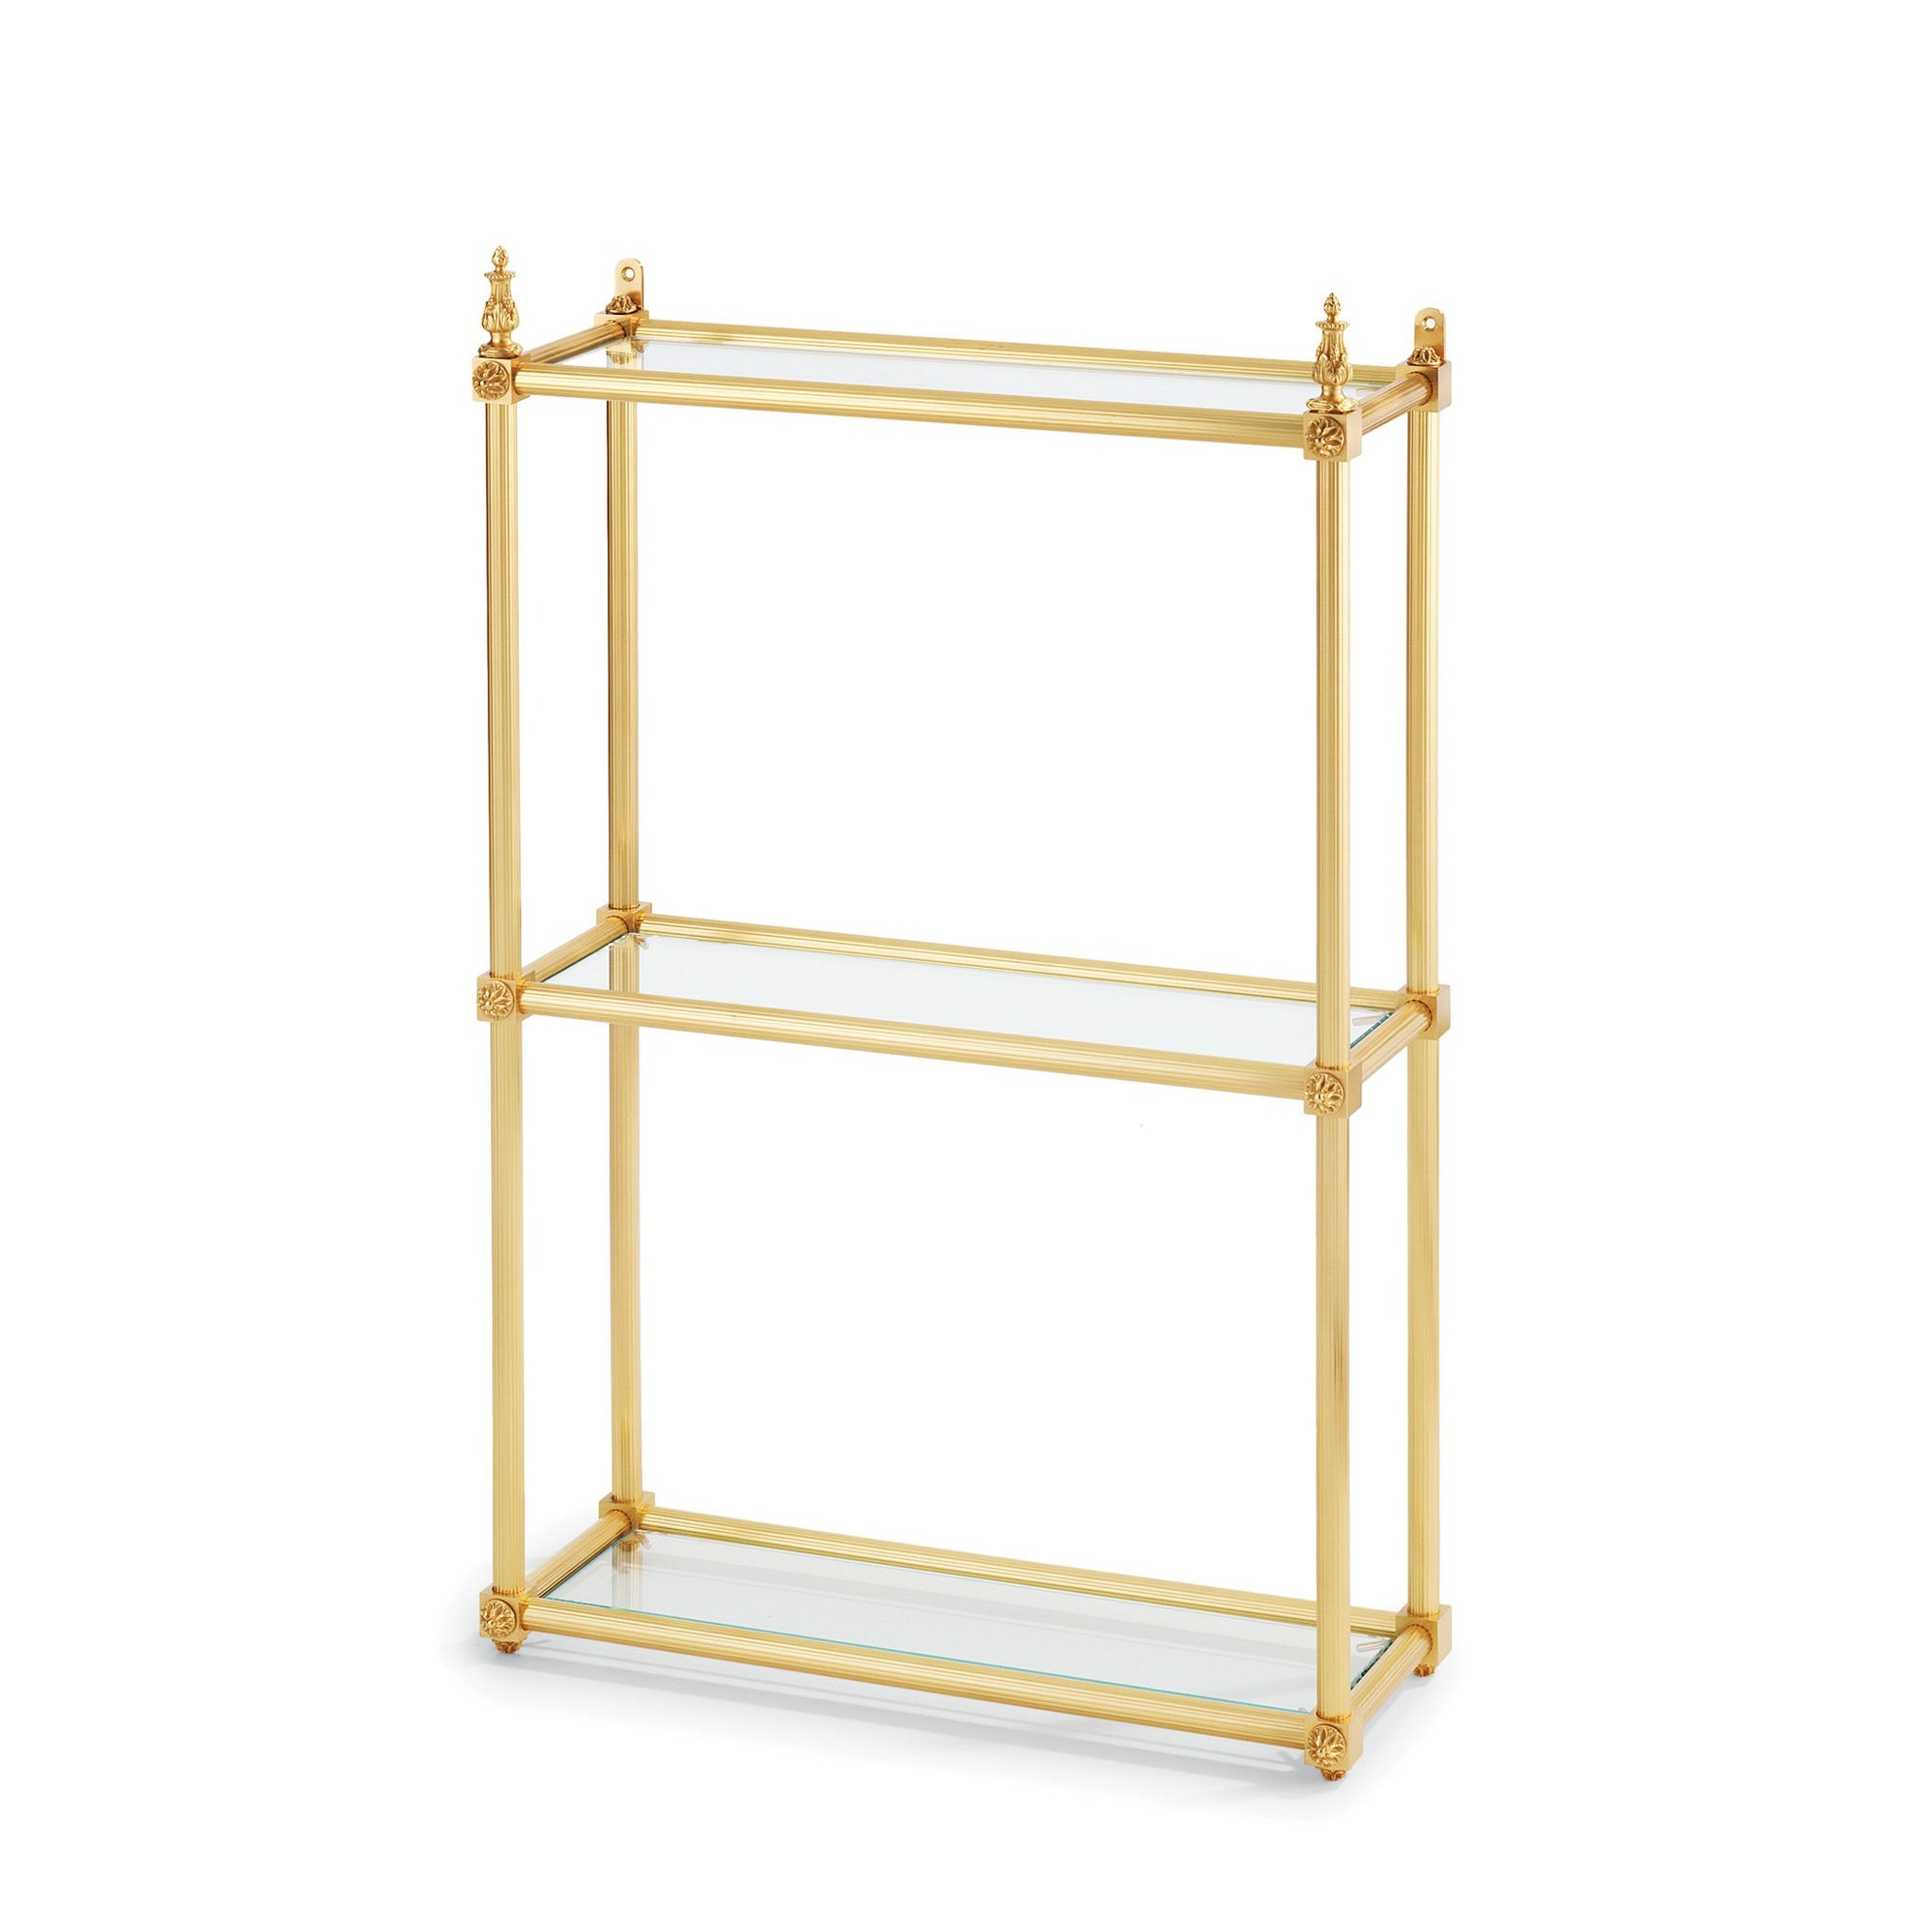 4691-GP Sherle Wagner International Louis XVI 3-Tier Shelf in Gold Plate metal finish